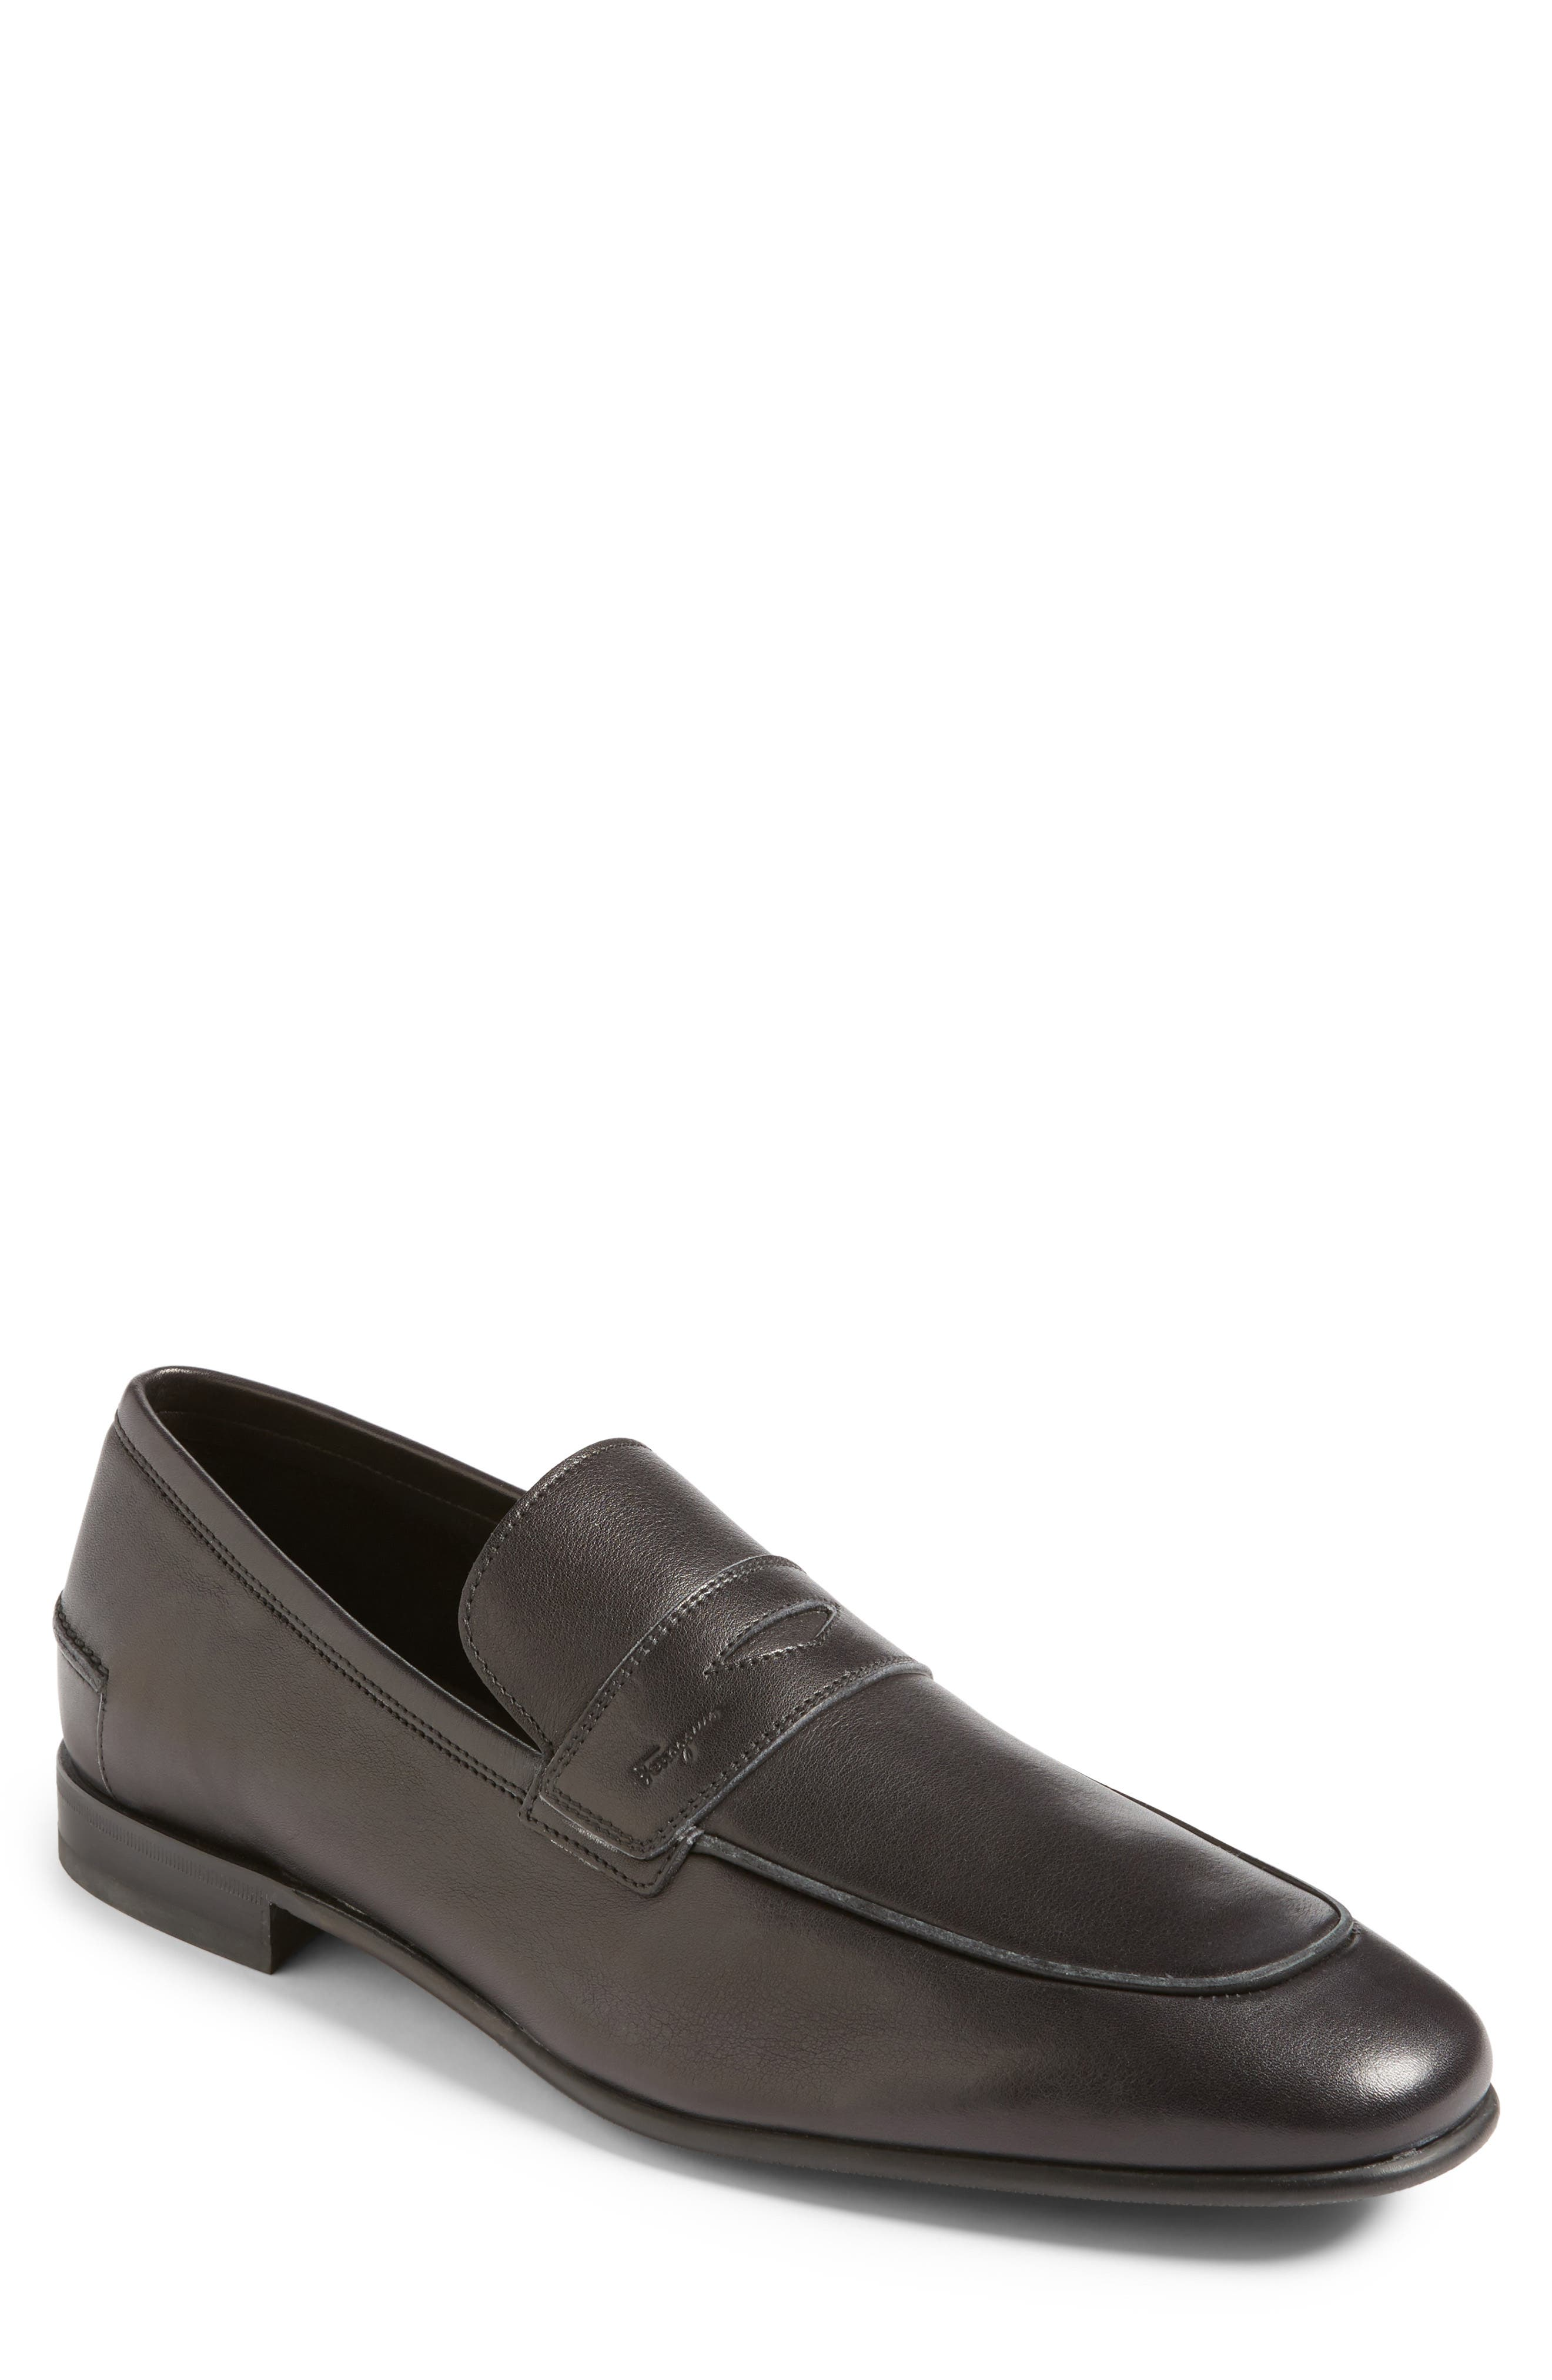 Duchamp Penny Loafer,                         Main,                         color, 001